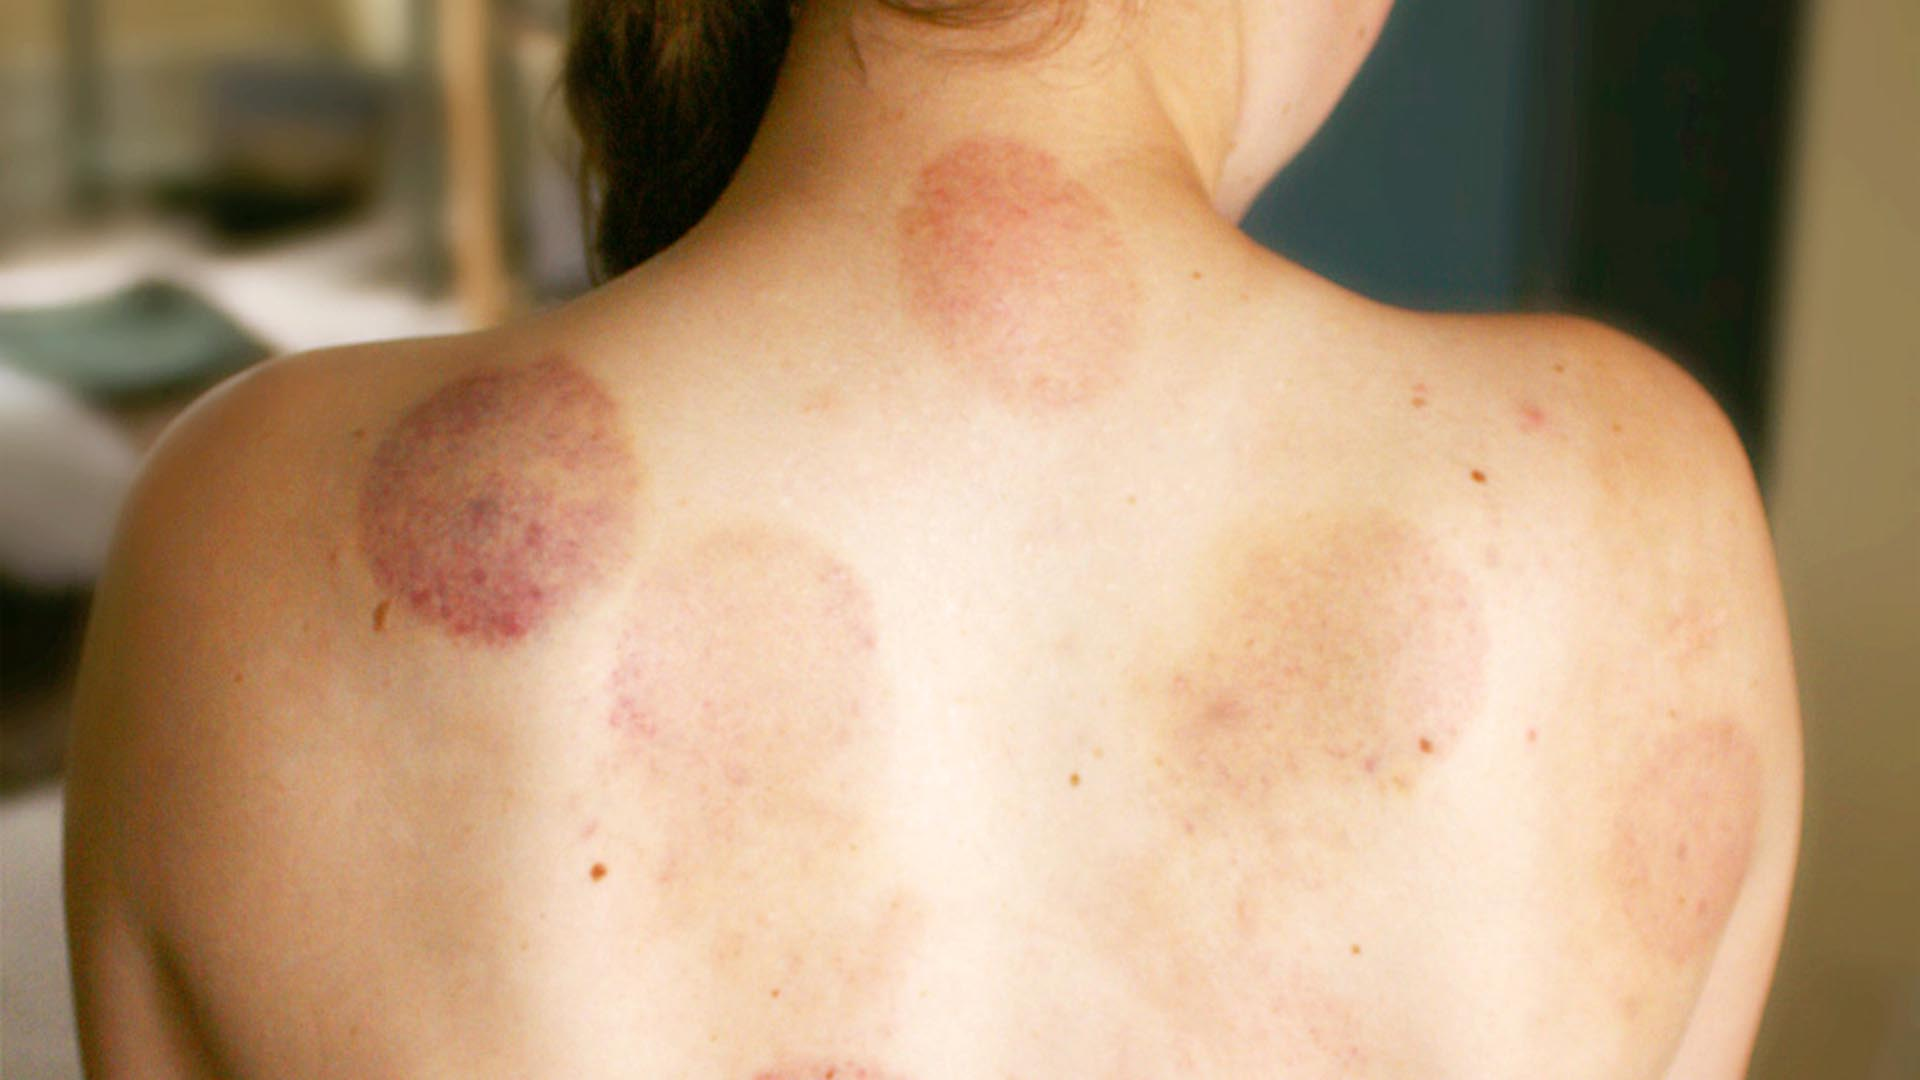 Do you know the meaning of the different cupping marks